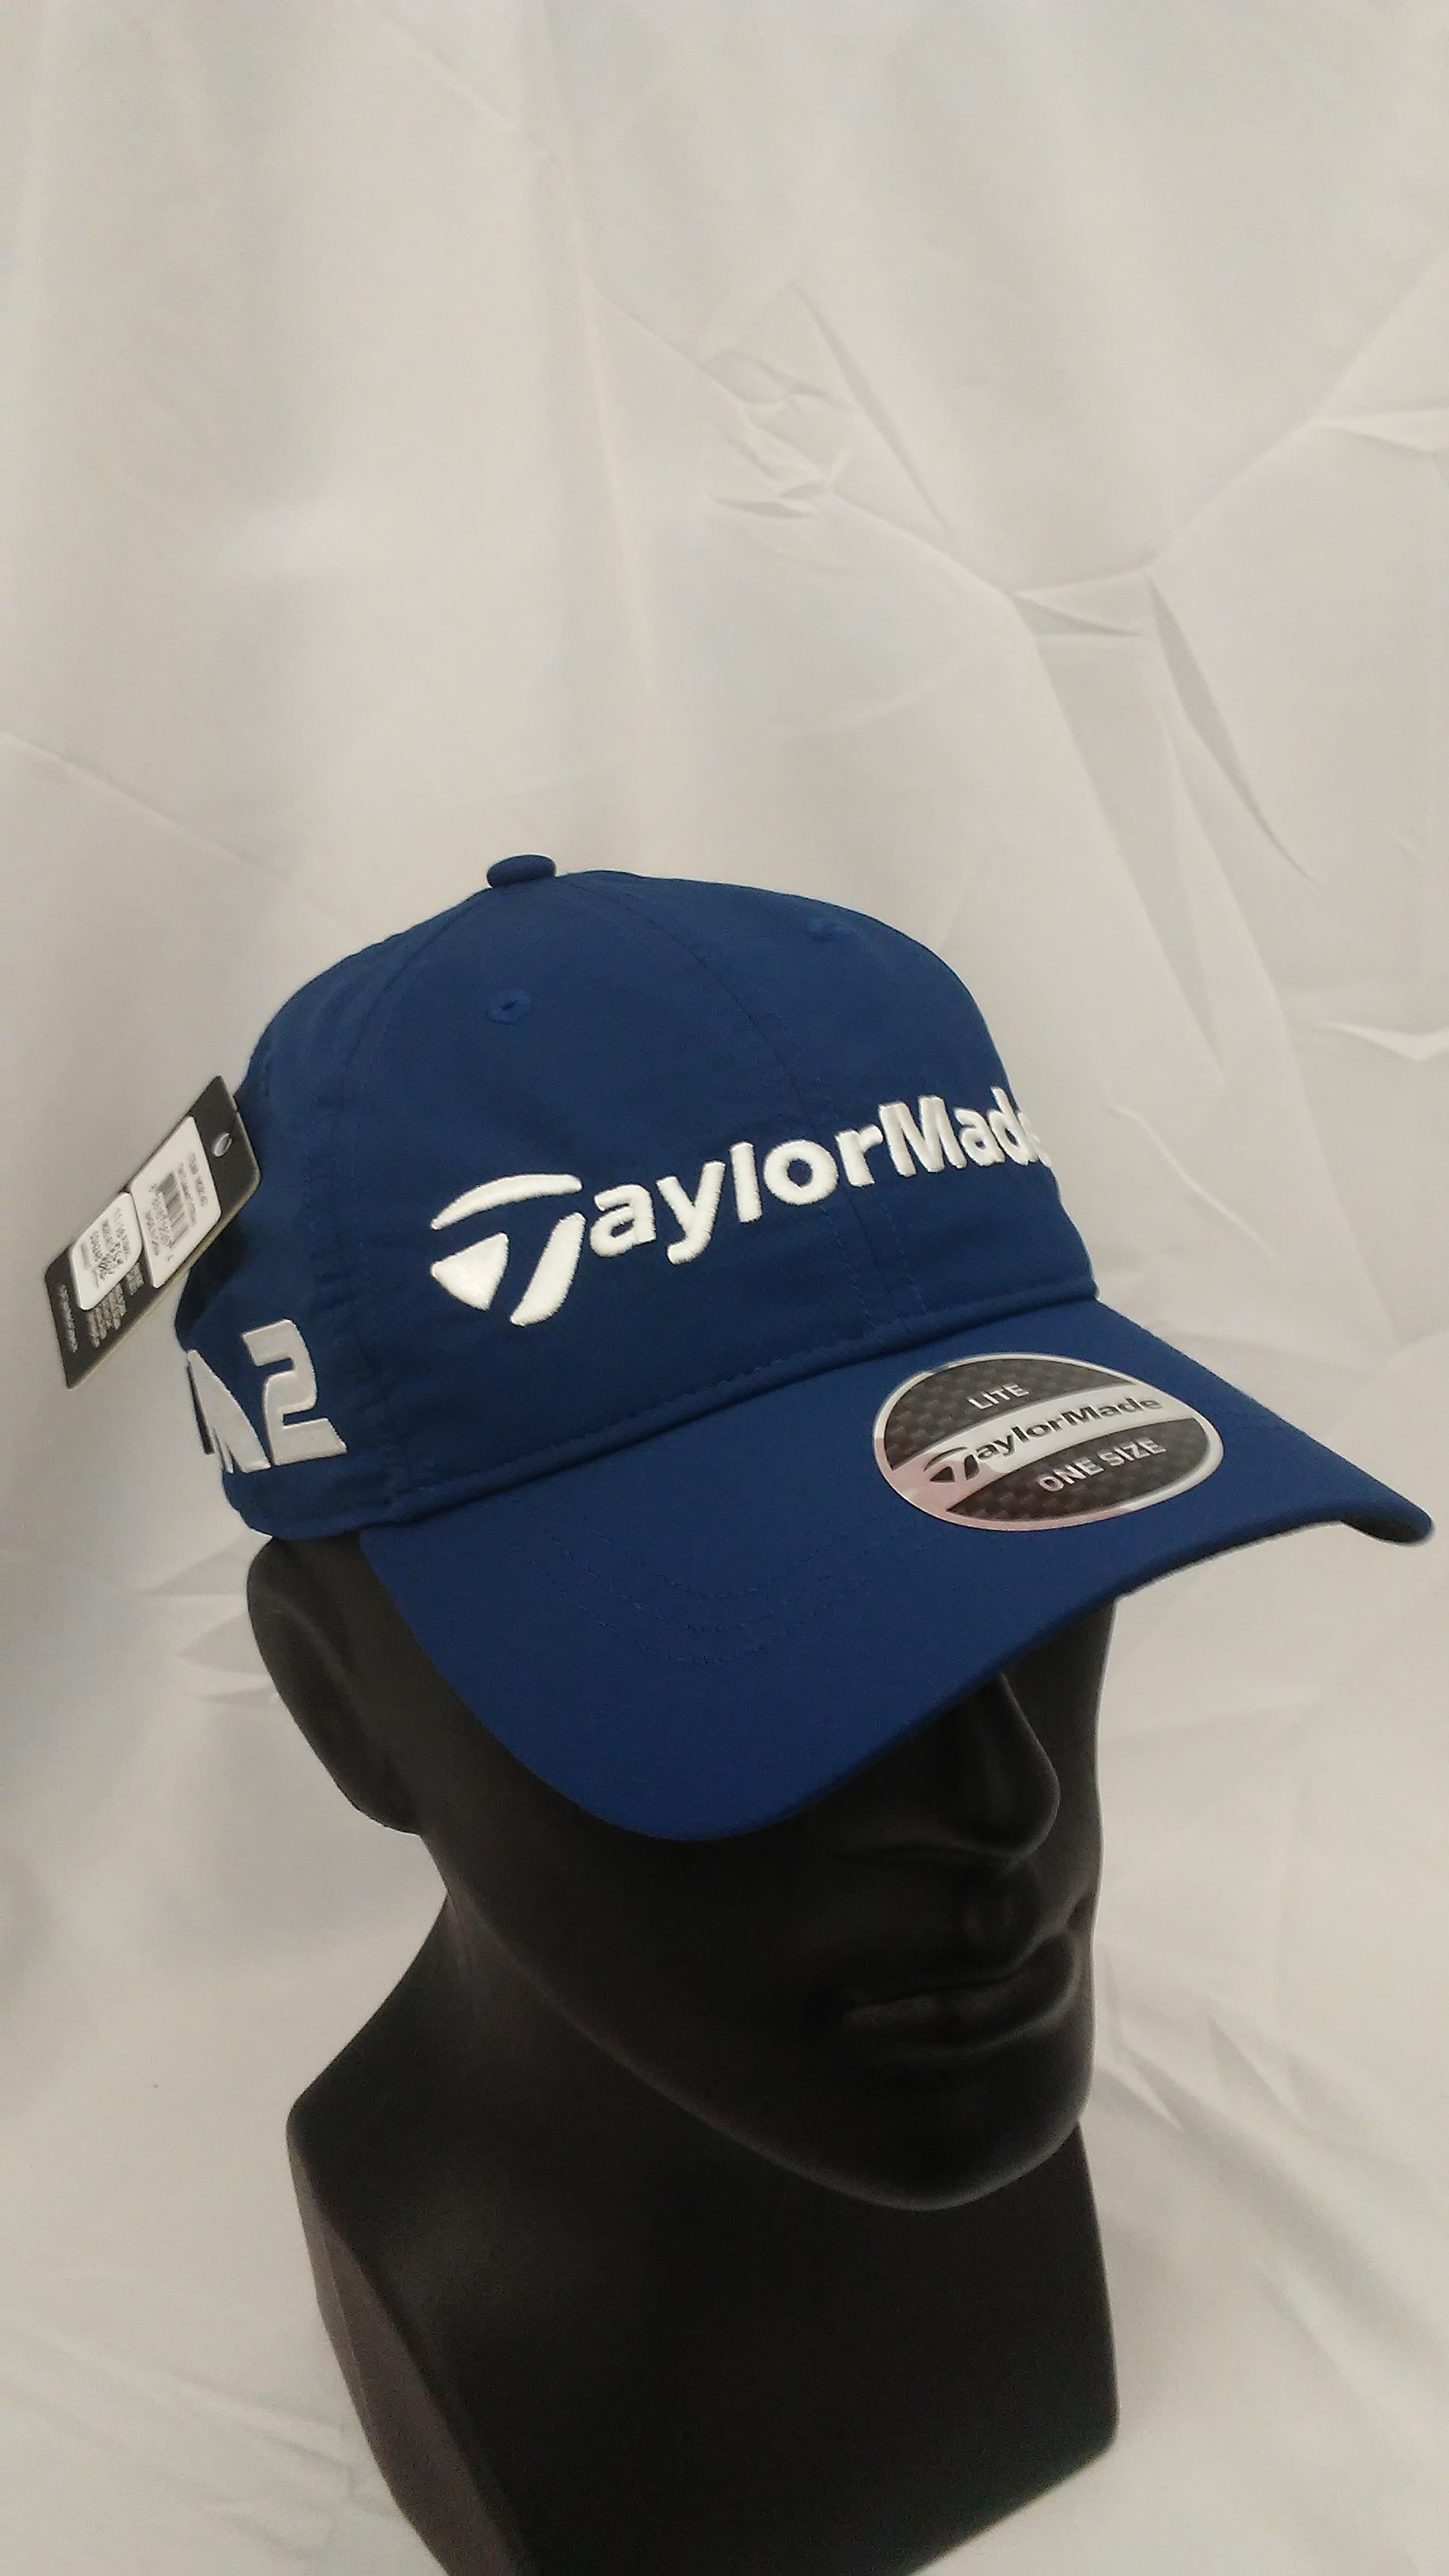 09e8a38bb Details about Men's TaylorMade Golf LiteTech Tour Authentic Adjustable Hat  Navy M1 & M2